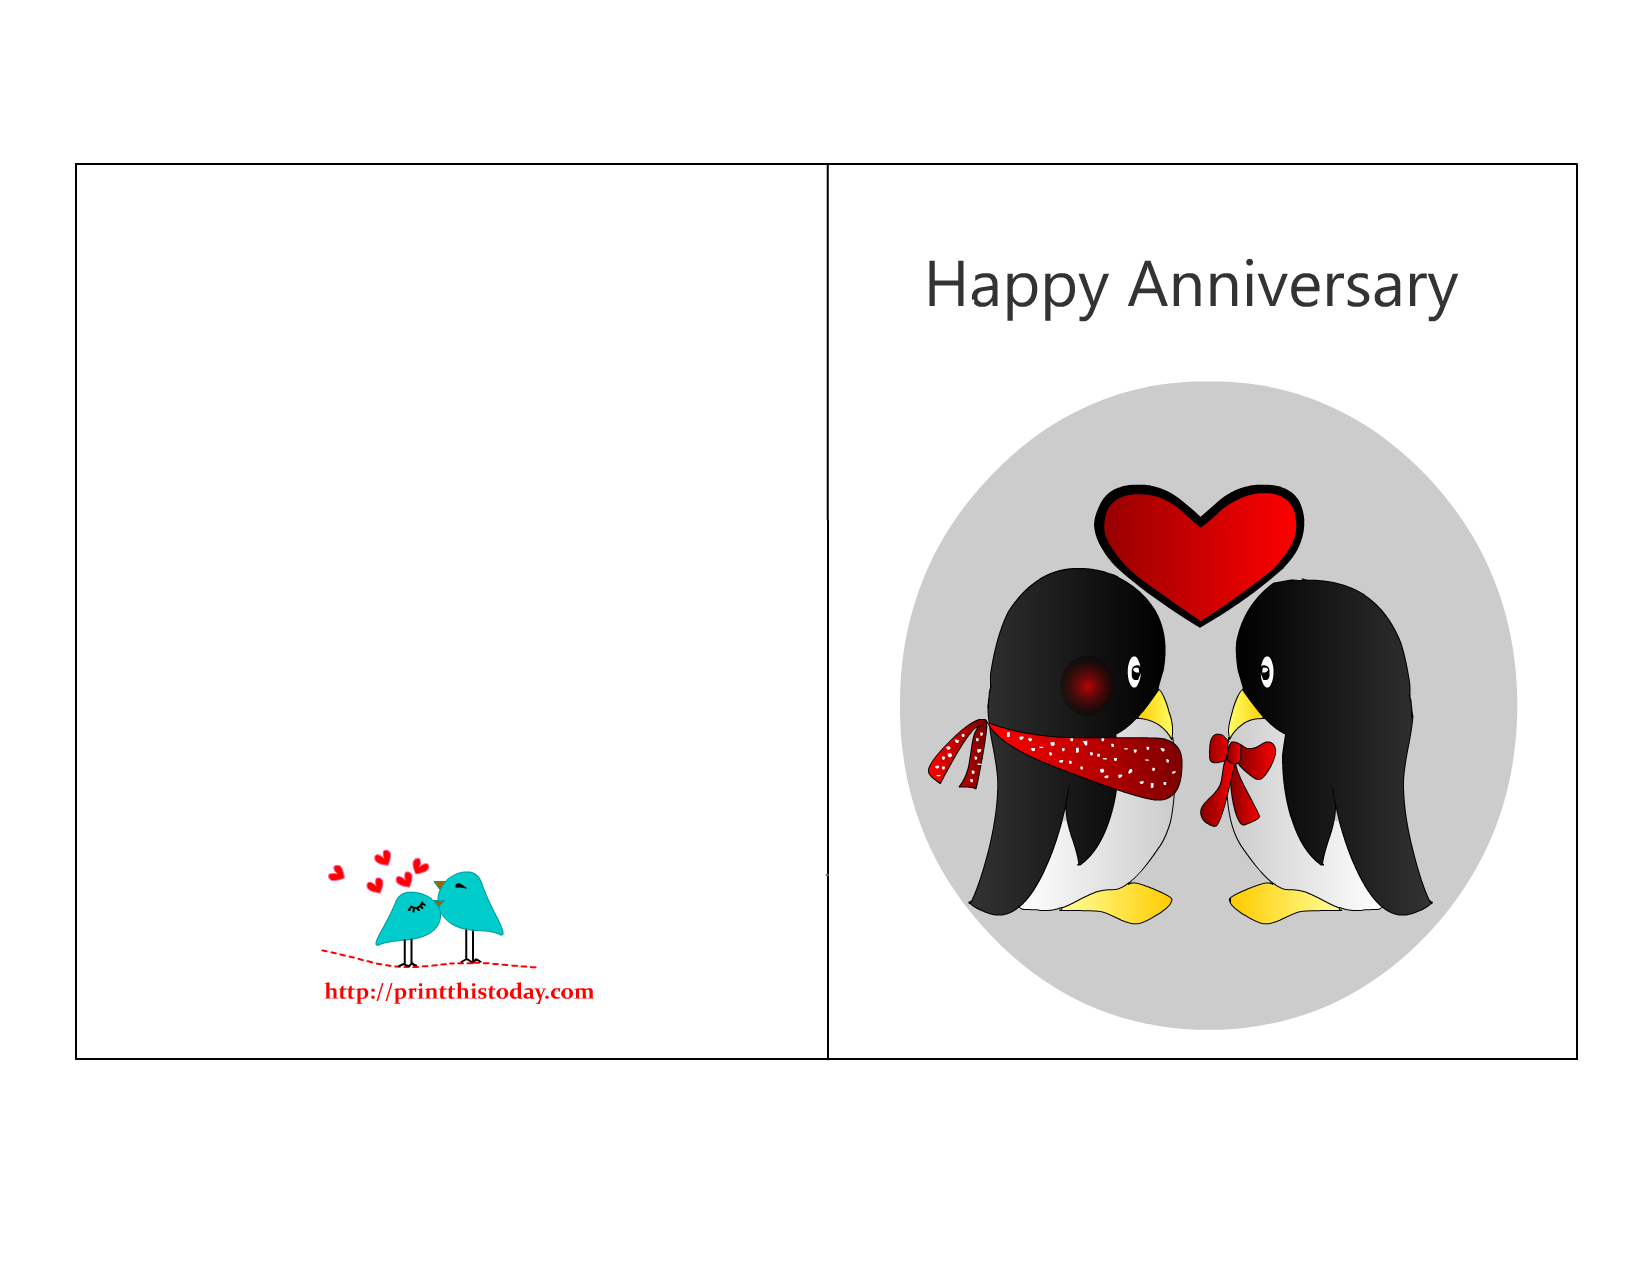 Hilaire image intended for printable anniversary cards